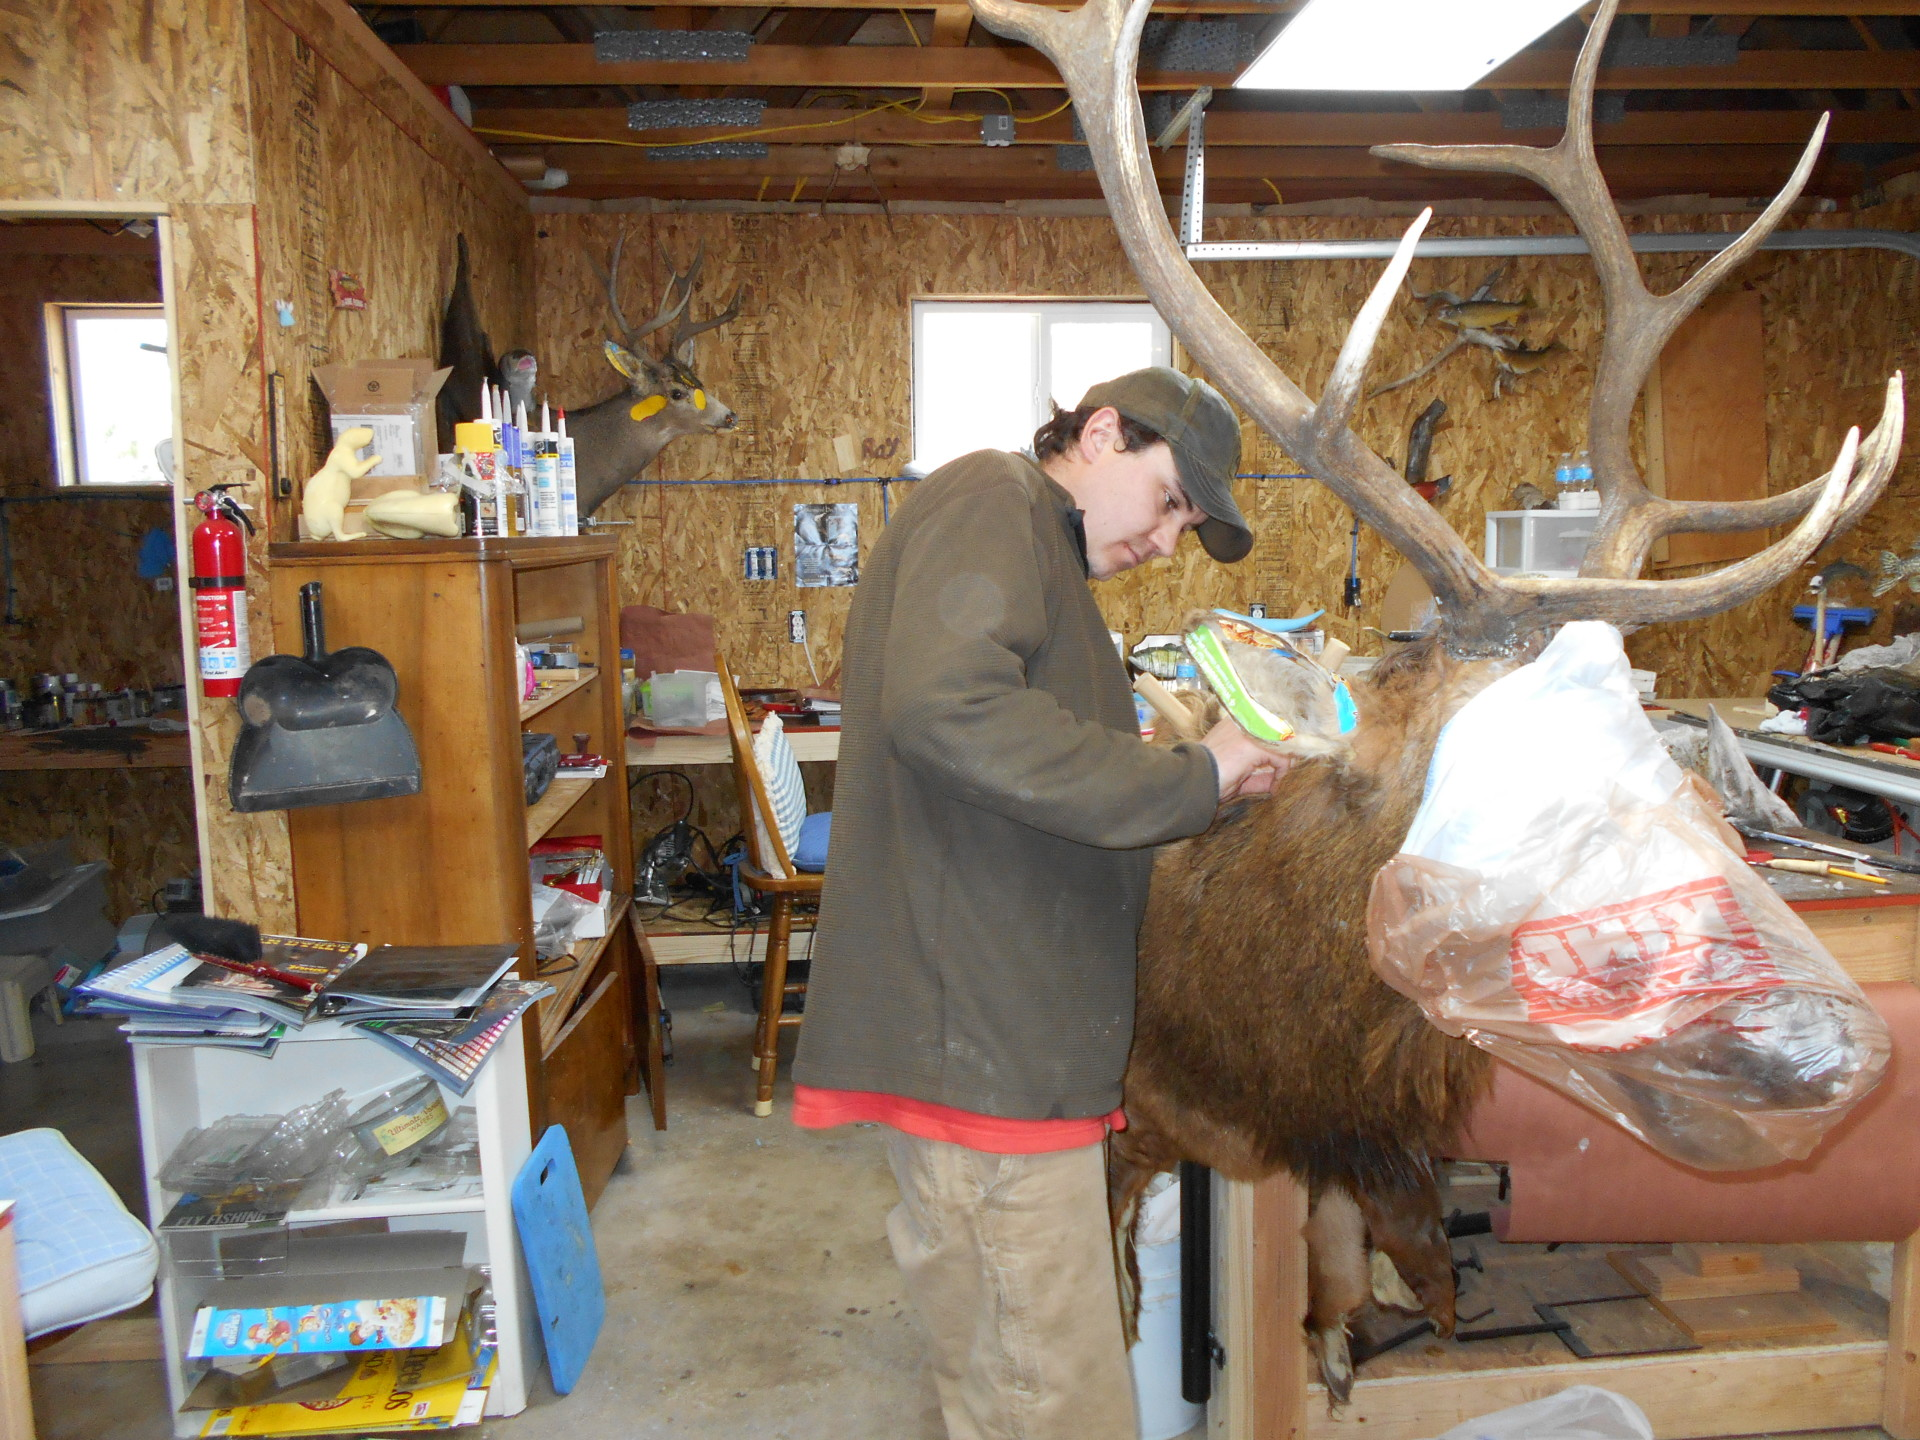 Golden Ridge Taxidermy, Taxidermy, Buck, Hunting, Taxidermist